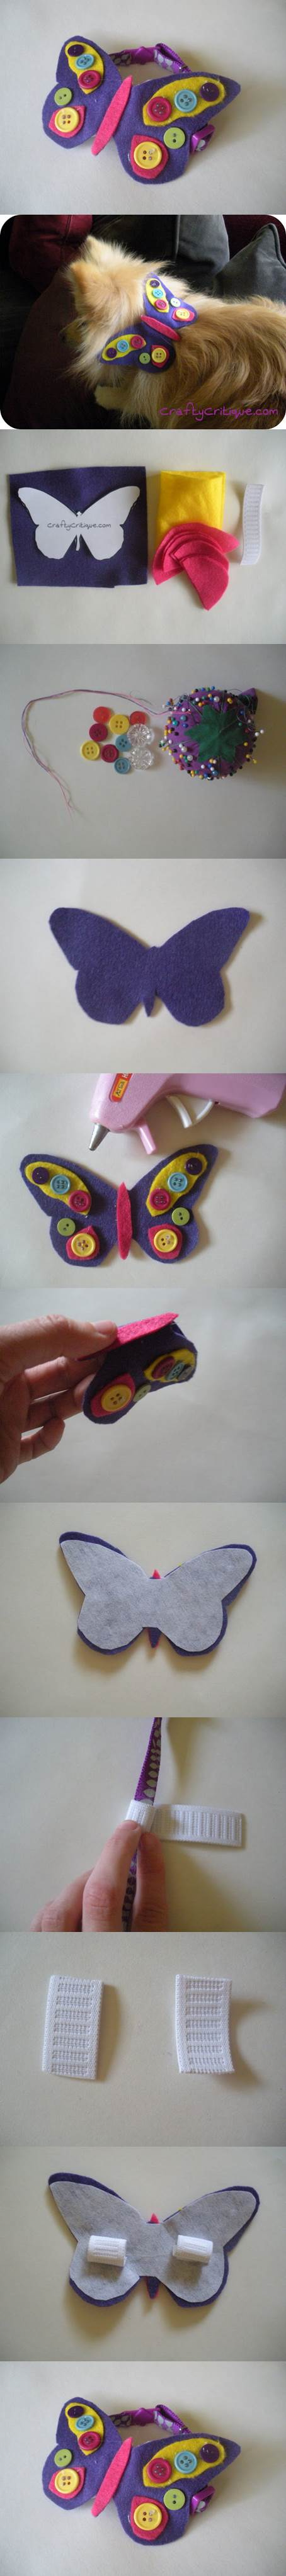 DIY Felt Butterfly Dog Collar Embellishment 2